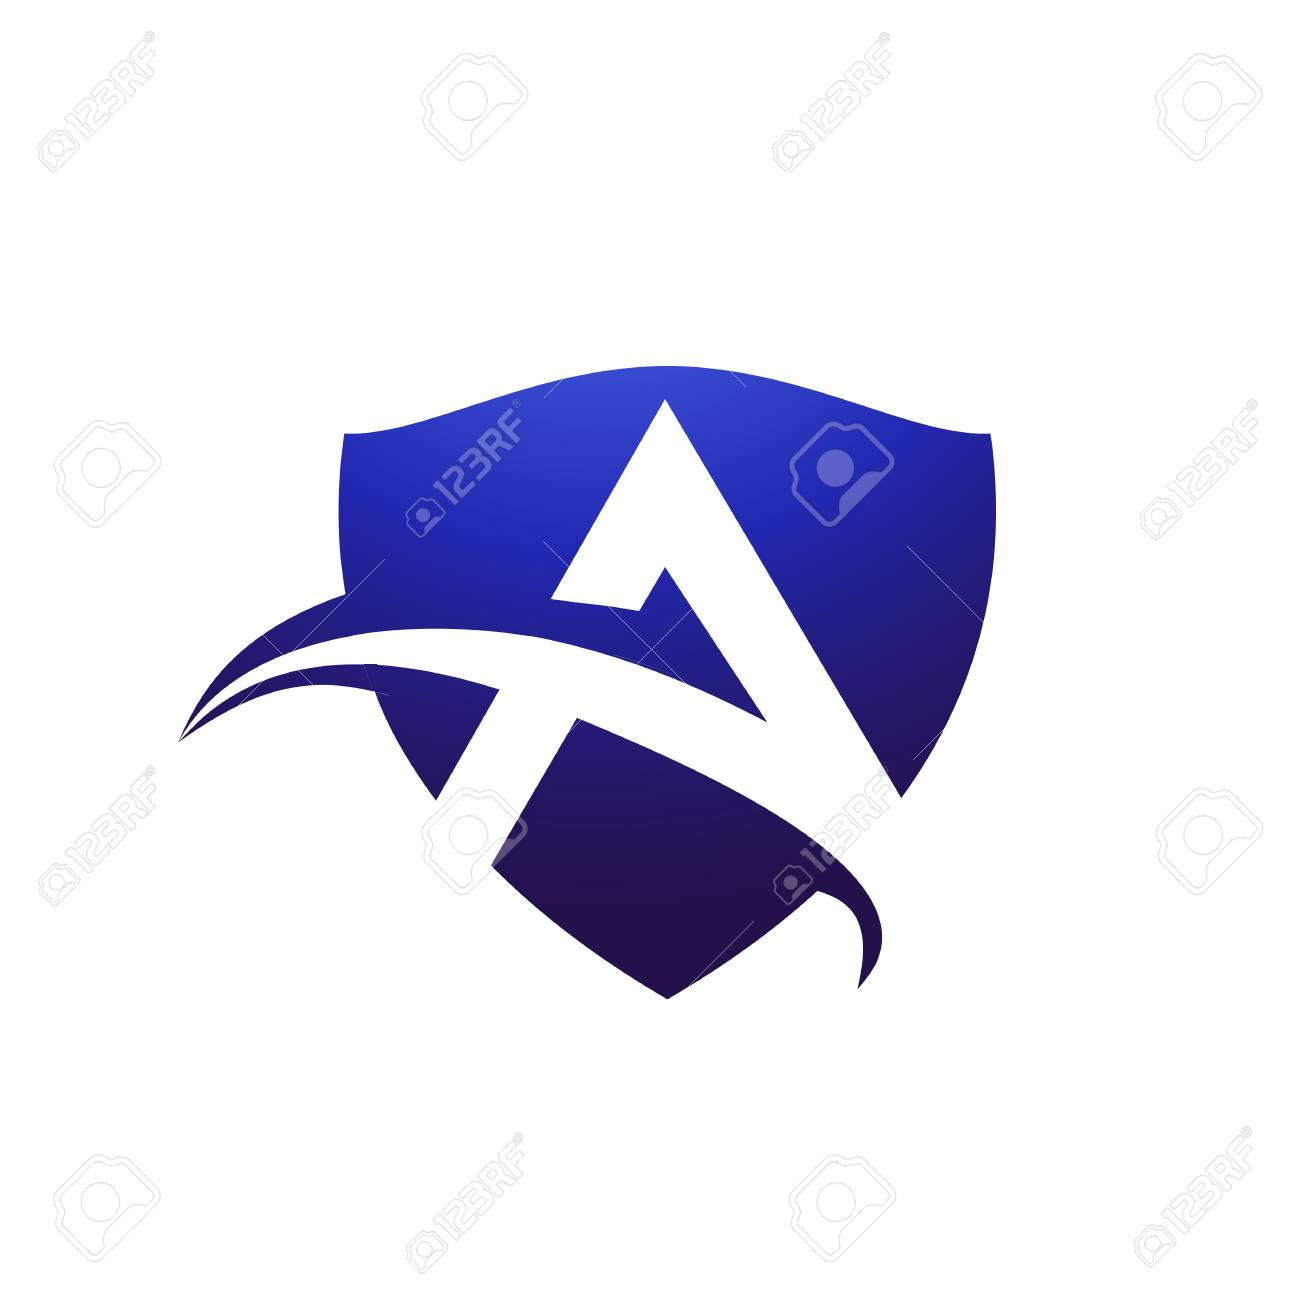 Letter A Shield Logo Design Concept Template Royalty Free Cliparts ...